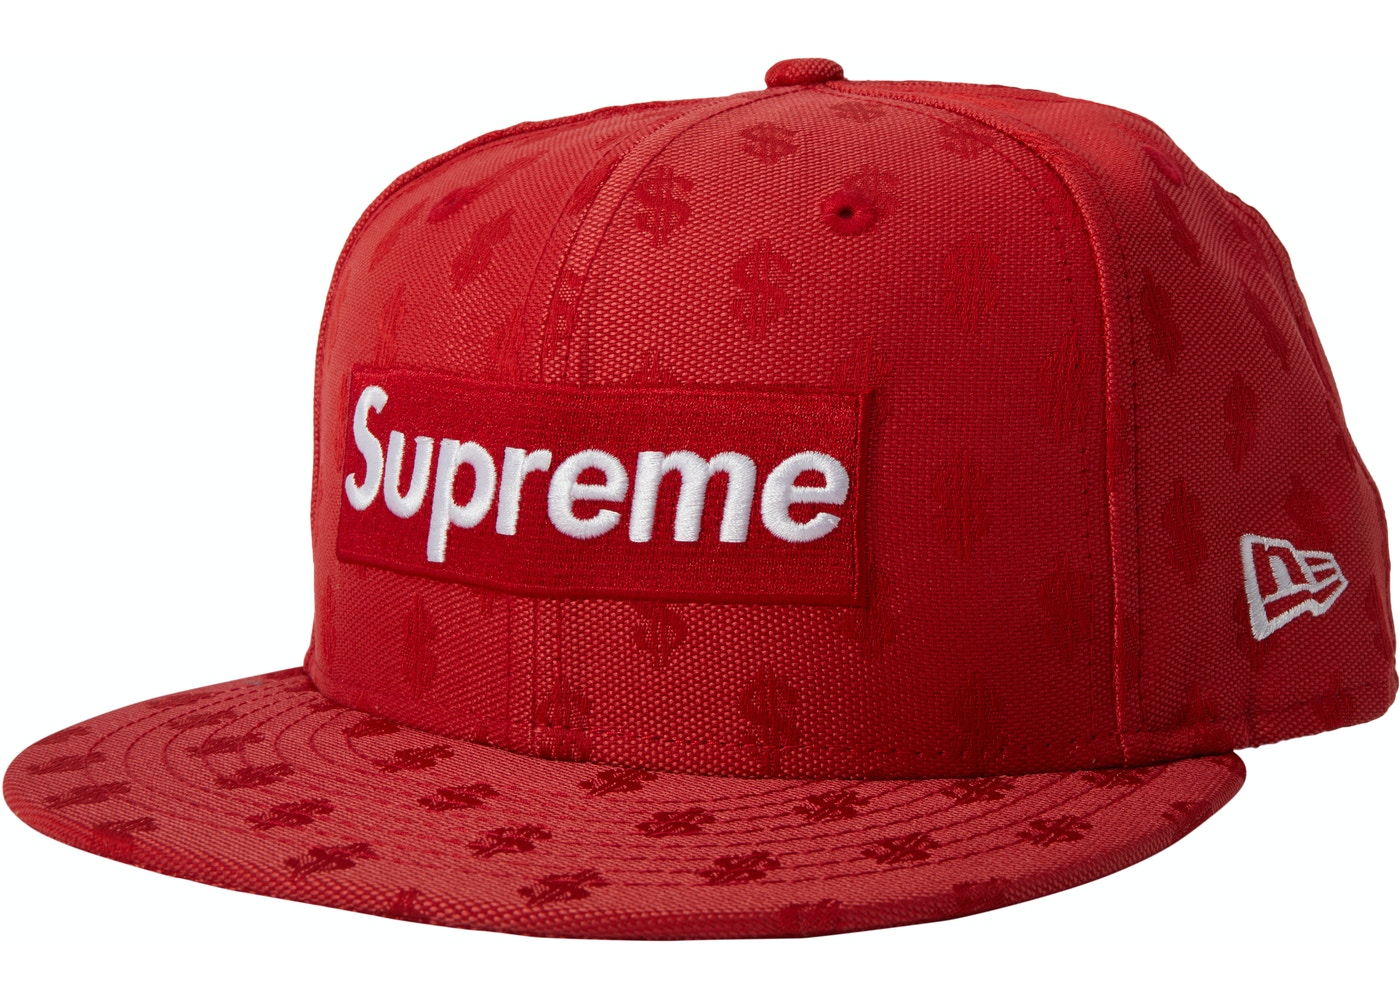 75906eb2063 Supreme Headwear - Featured